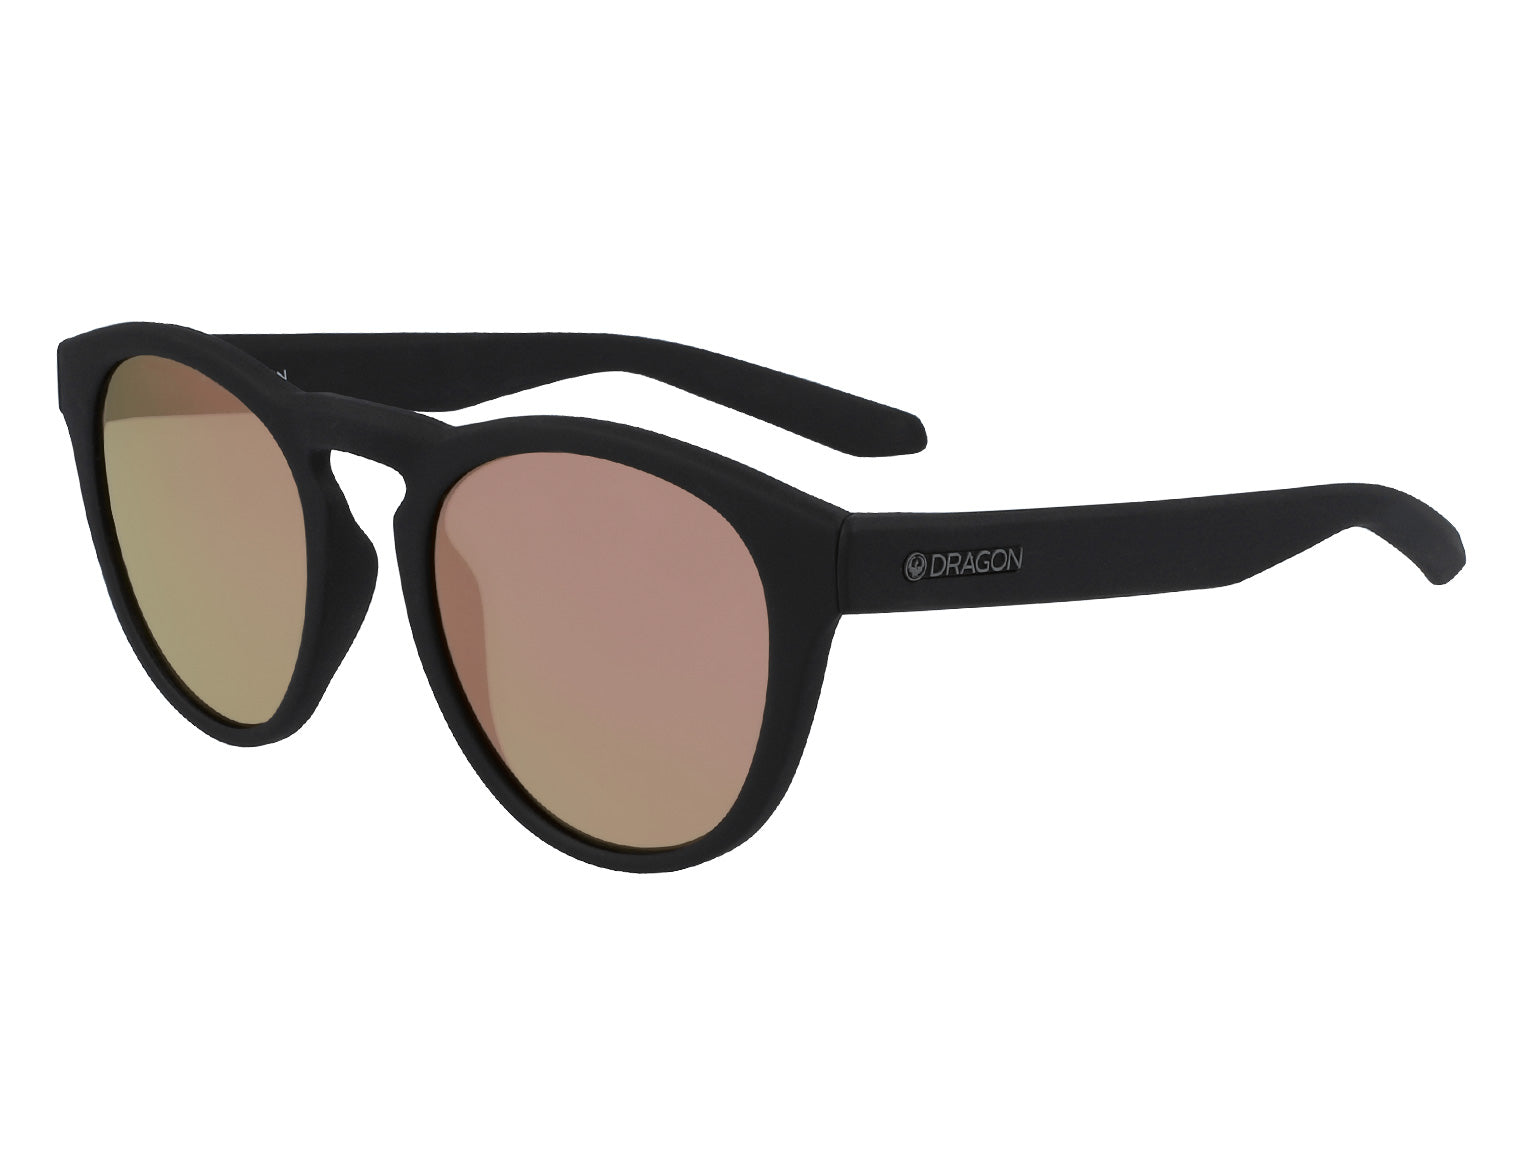 OPUS - Matte Black H2O ; with Lumalens Rose Gold Ionized Lens